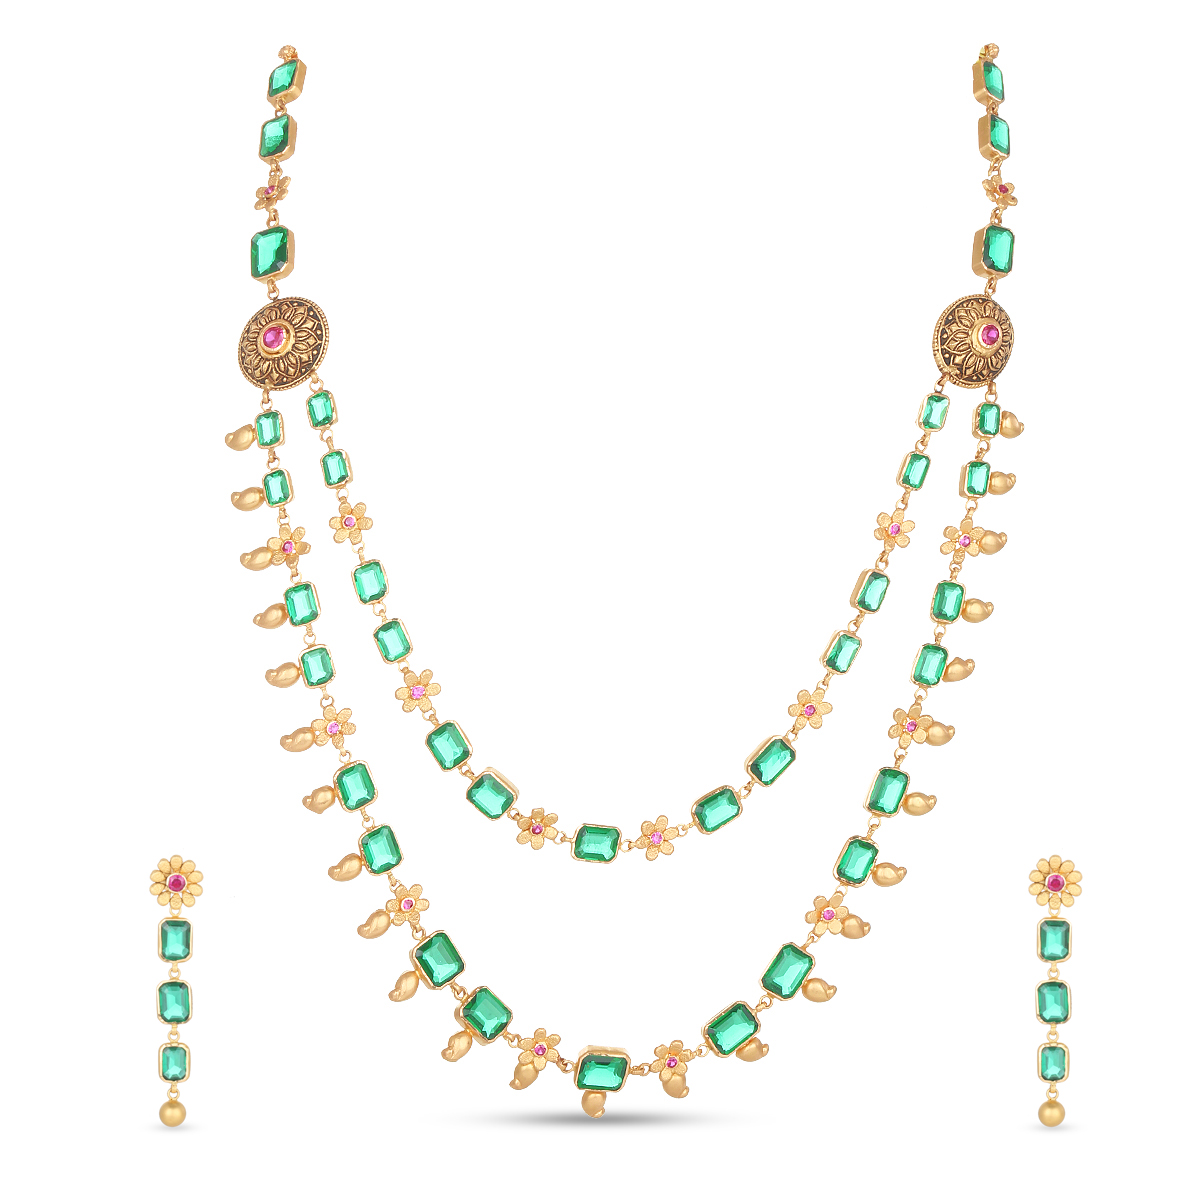 The Manomy Necklace Set